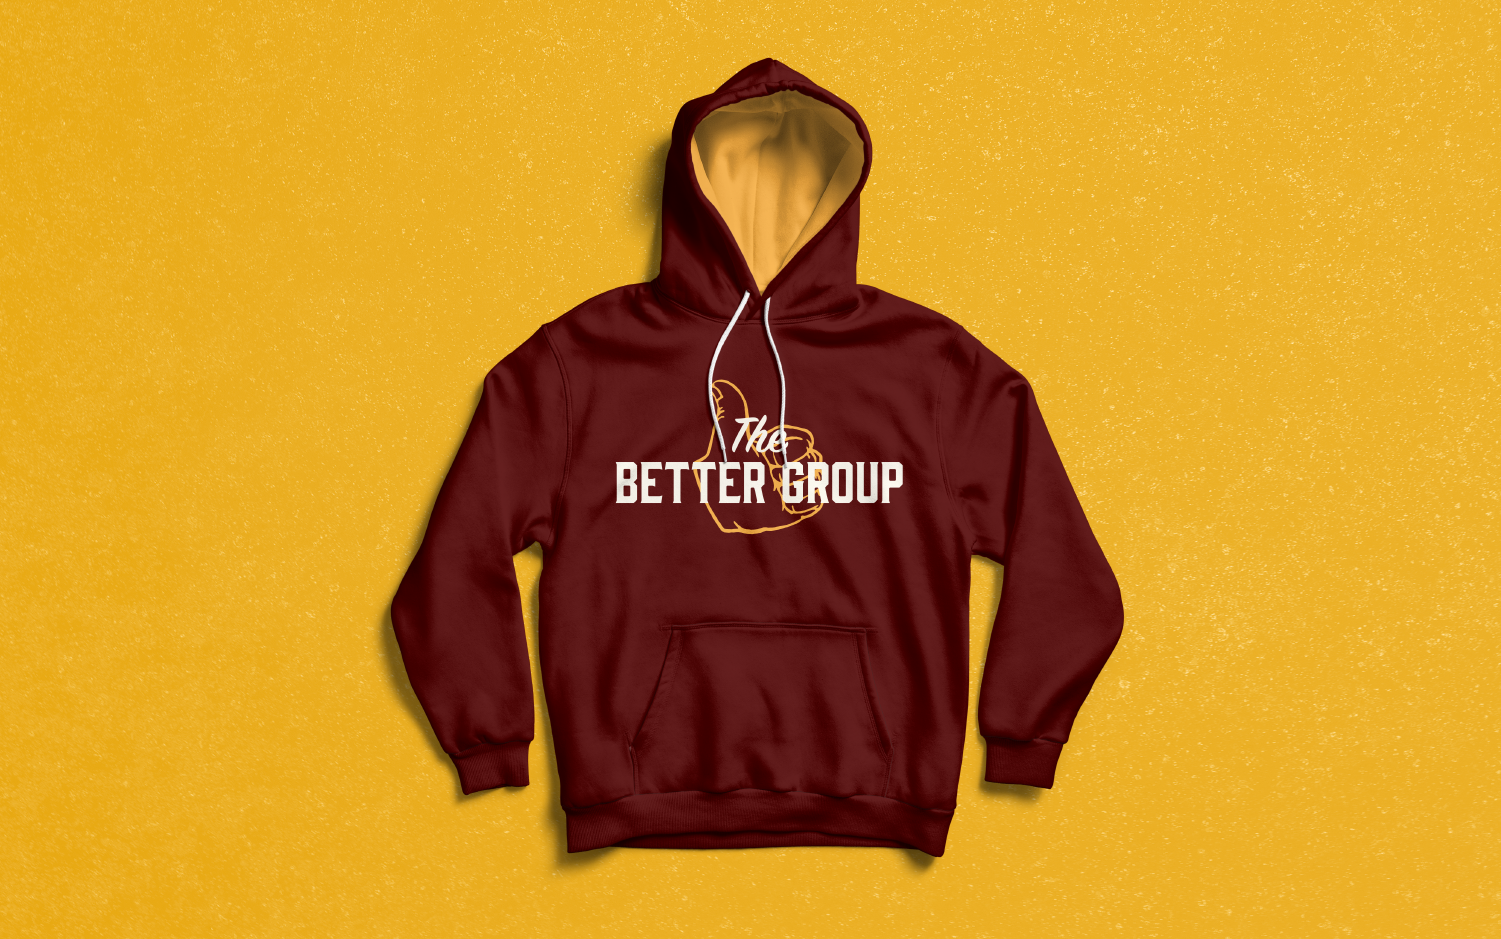 The Better Group, non-profit logo and branded hoodie